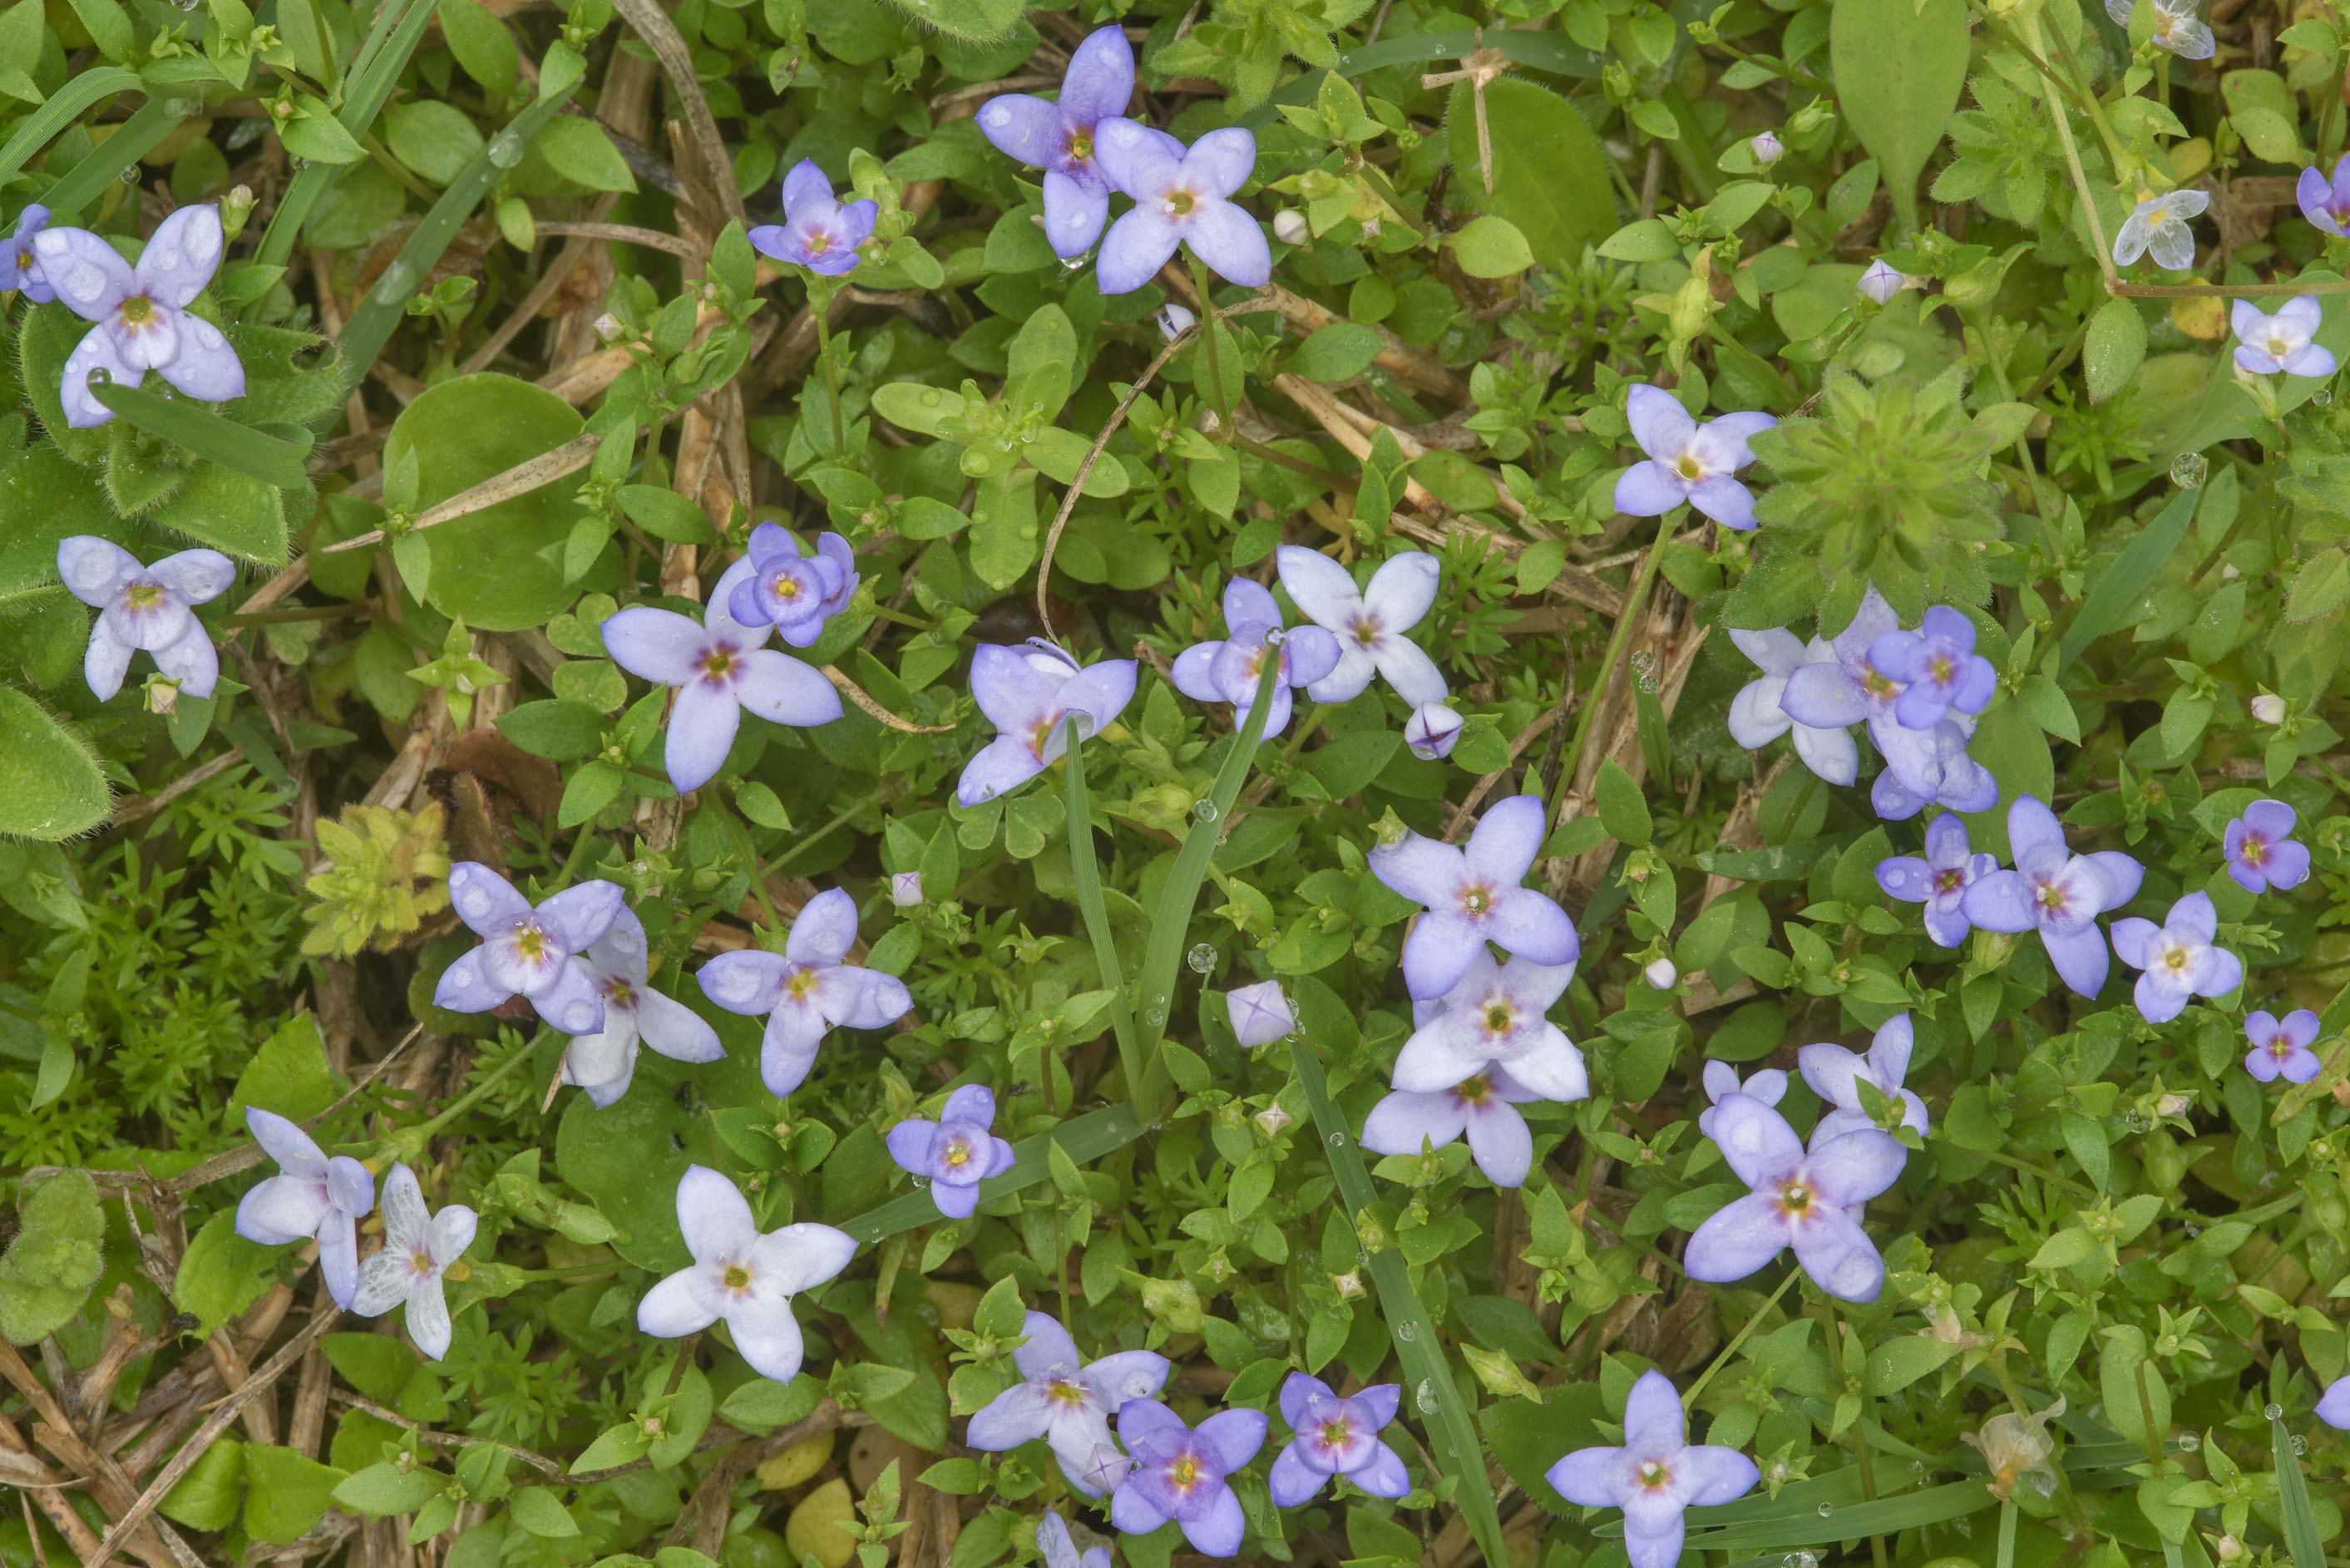 Blooming bluets (Star-violet, Hedyotis) in Wolf Pen Creek Park. College Station, Texas